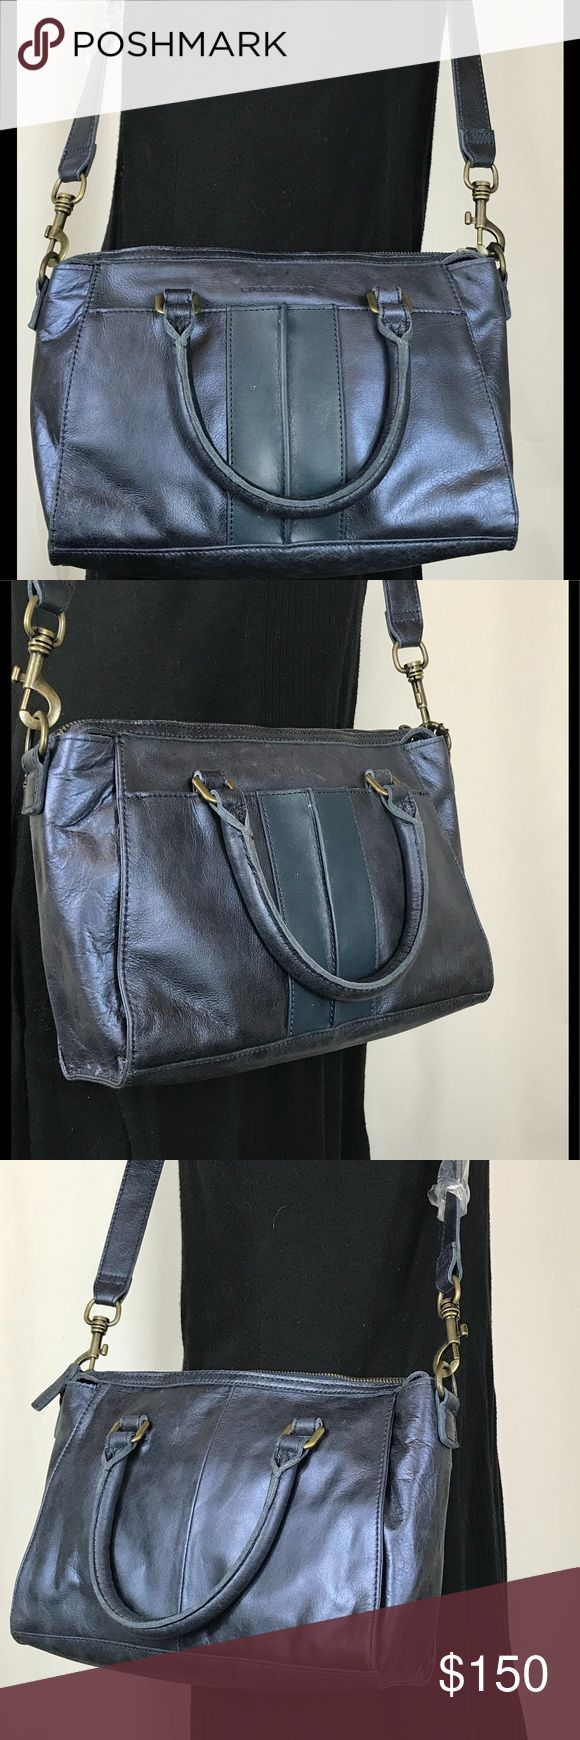 "Liebeskind molly leather satchel in dark blue NWT Liebeskind molly leather satchel in dark blue NWT. 1 large outside pocket worth a magnet closure, 1 Large zippered inside pocket and 3 medium sized pockets. Long adjustable detachable cross body strap and 2 small carry handles. Cotton lining with blue leather trim. Measurements: 18"" X 8"" X 3.5"" New with tags! Liebeskind Bags Satchels"